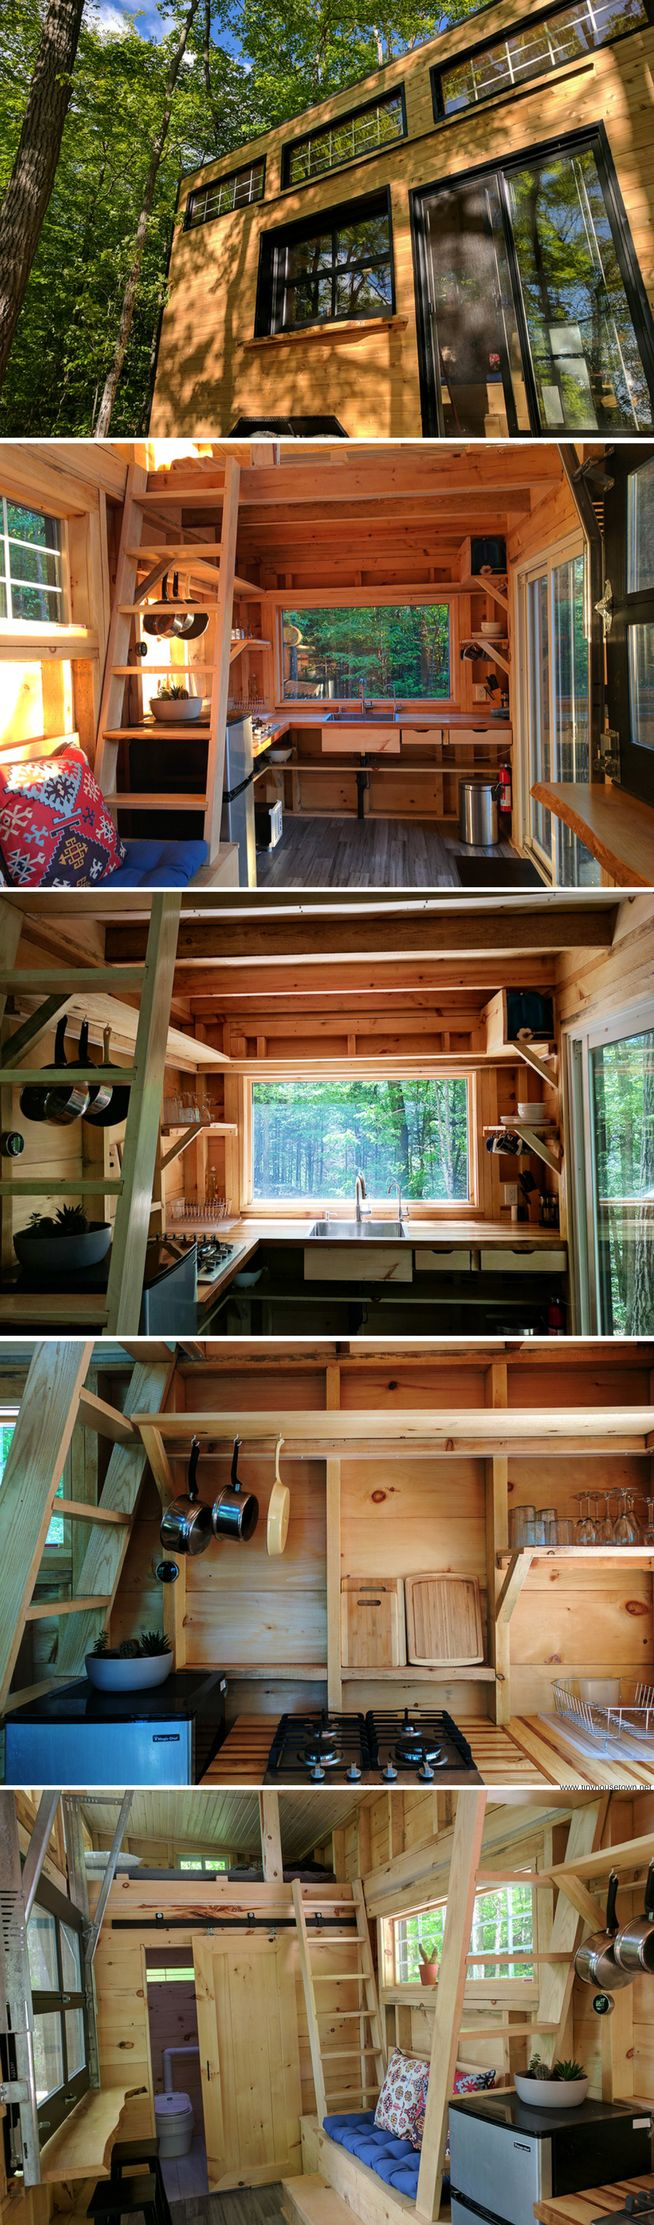 The Auburn: a tiny house available for rent from Cabinscape in Frontenac, Ontario